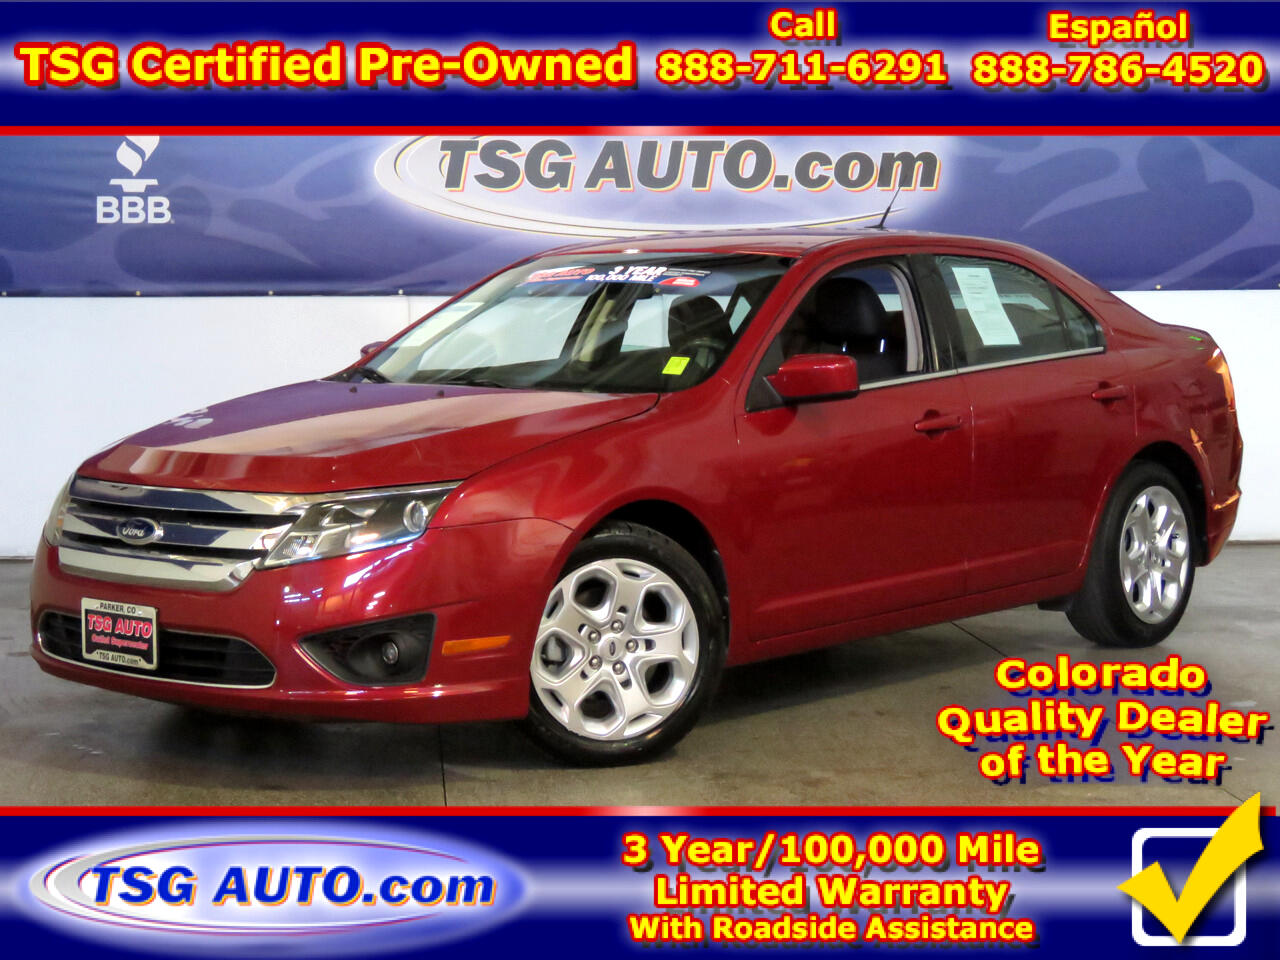 2010 Ford Fusion 4dr Sdn I4 SE